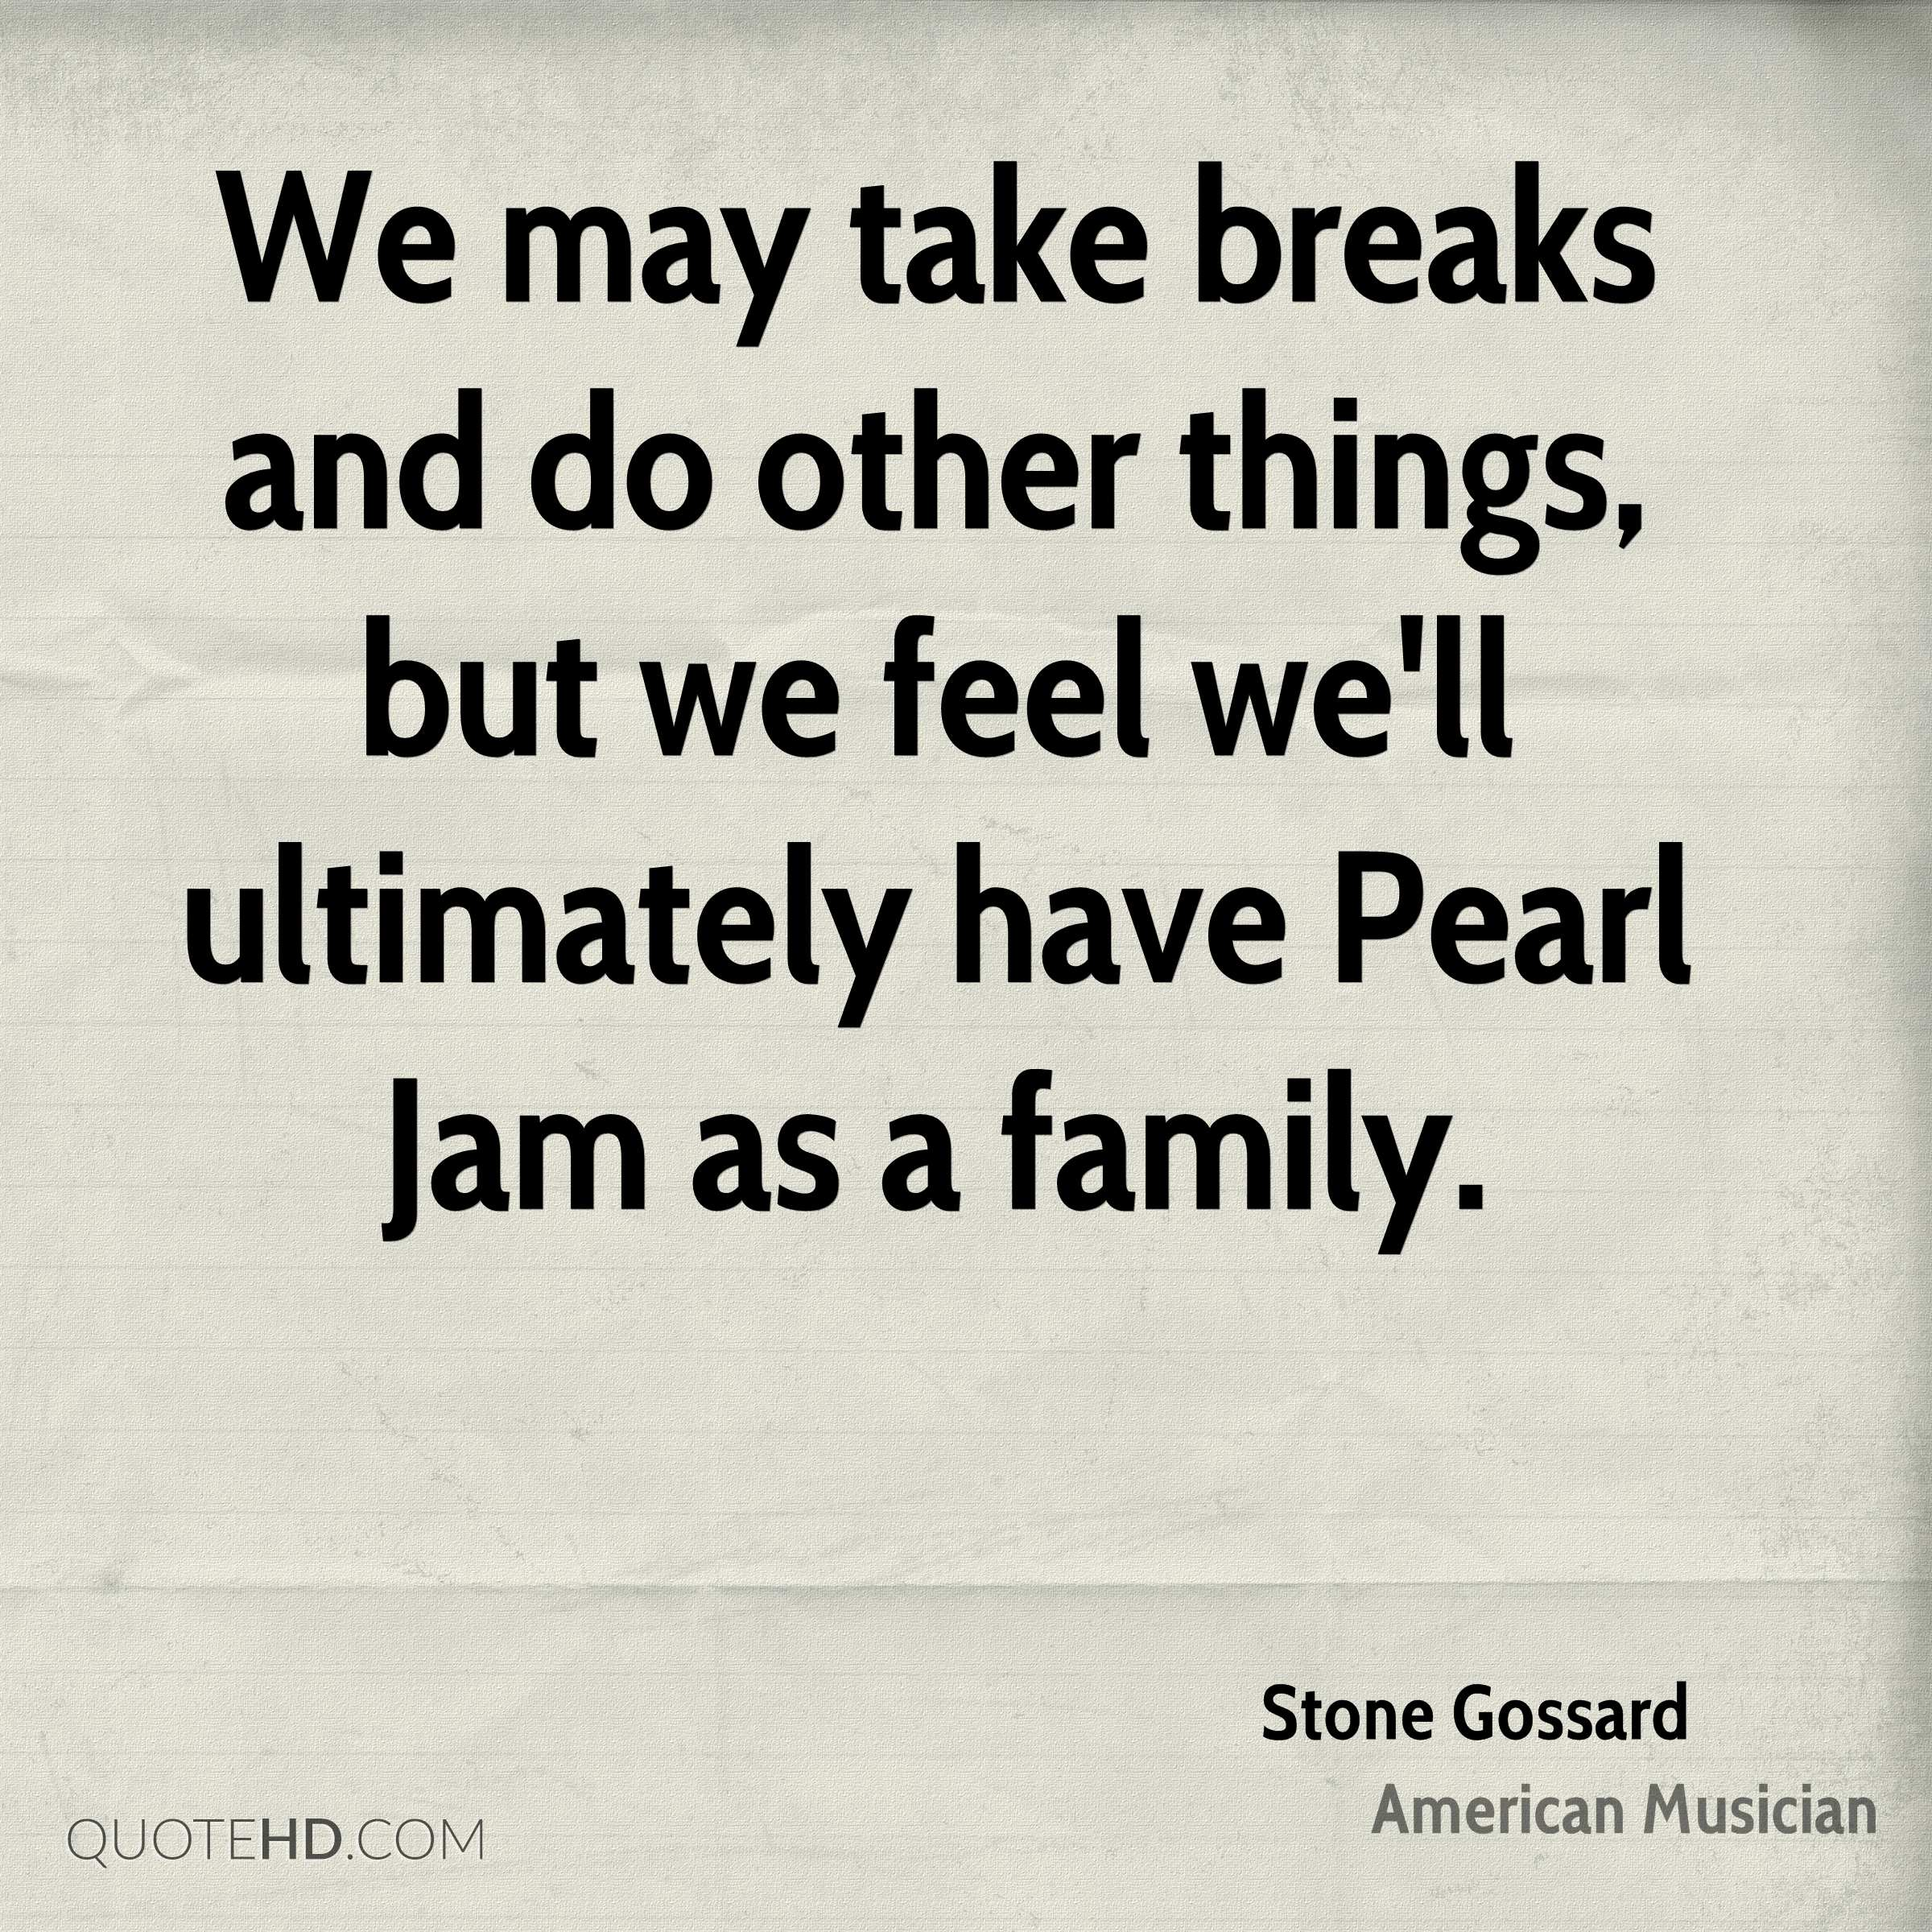 We may take breaks and do other things, but we feel we'll ultimately have Pearl Jam as a family.